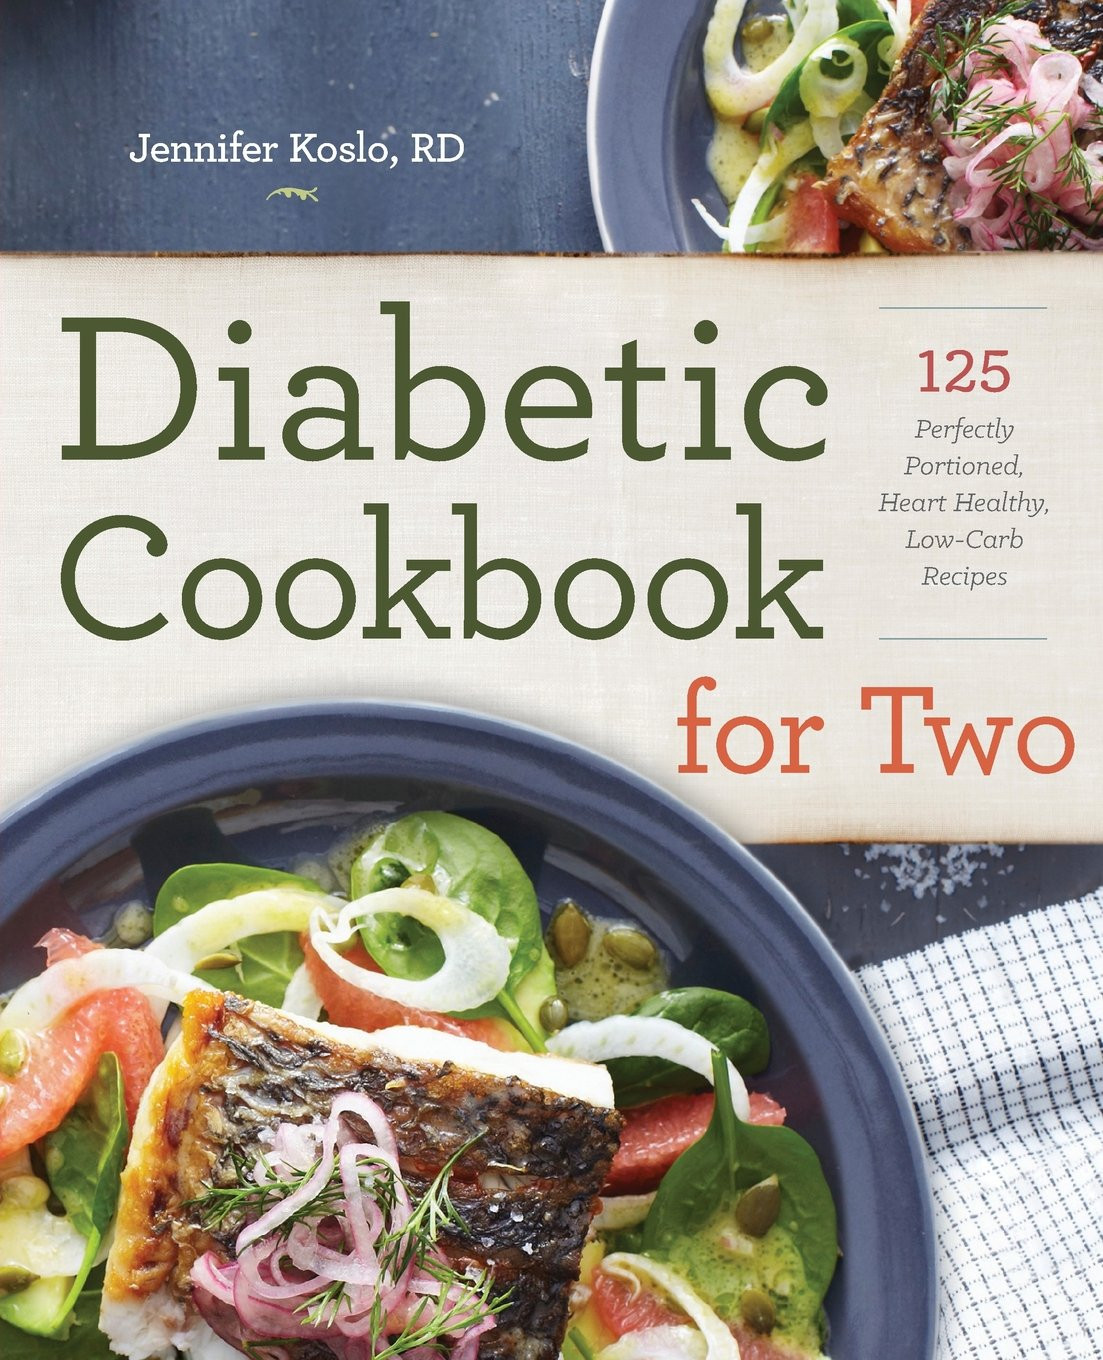 Heart Healthy Recipes For Two  Diabetic Cookbook for Two 125 Perfectly Portioned Heart